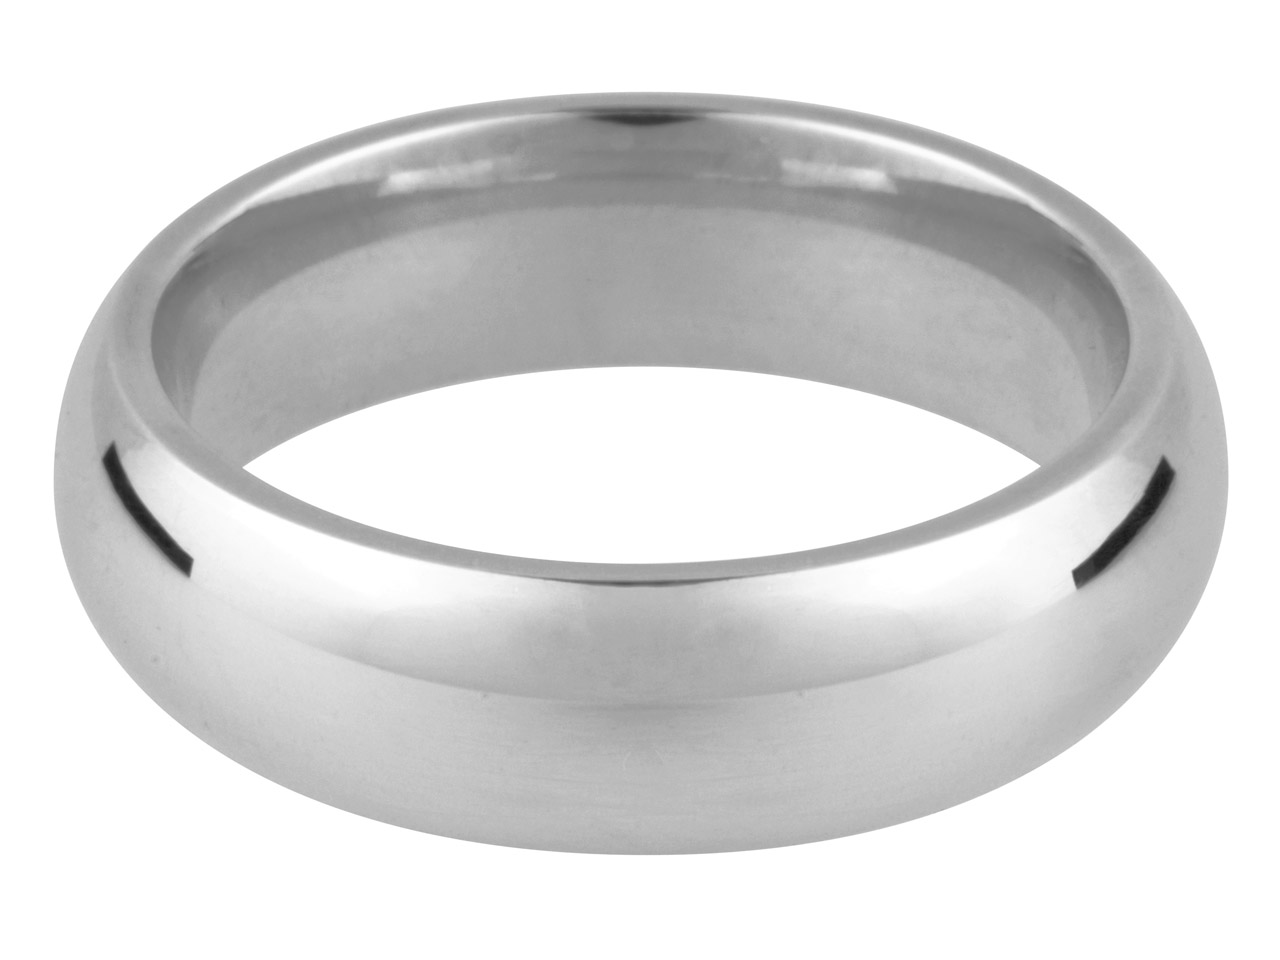 Platinum Court Wedding Ring 4.0mm, Size M, 8.7g Heavy Weight,         Hallmarked, Wall Thickness 2.06mm